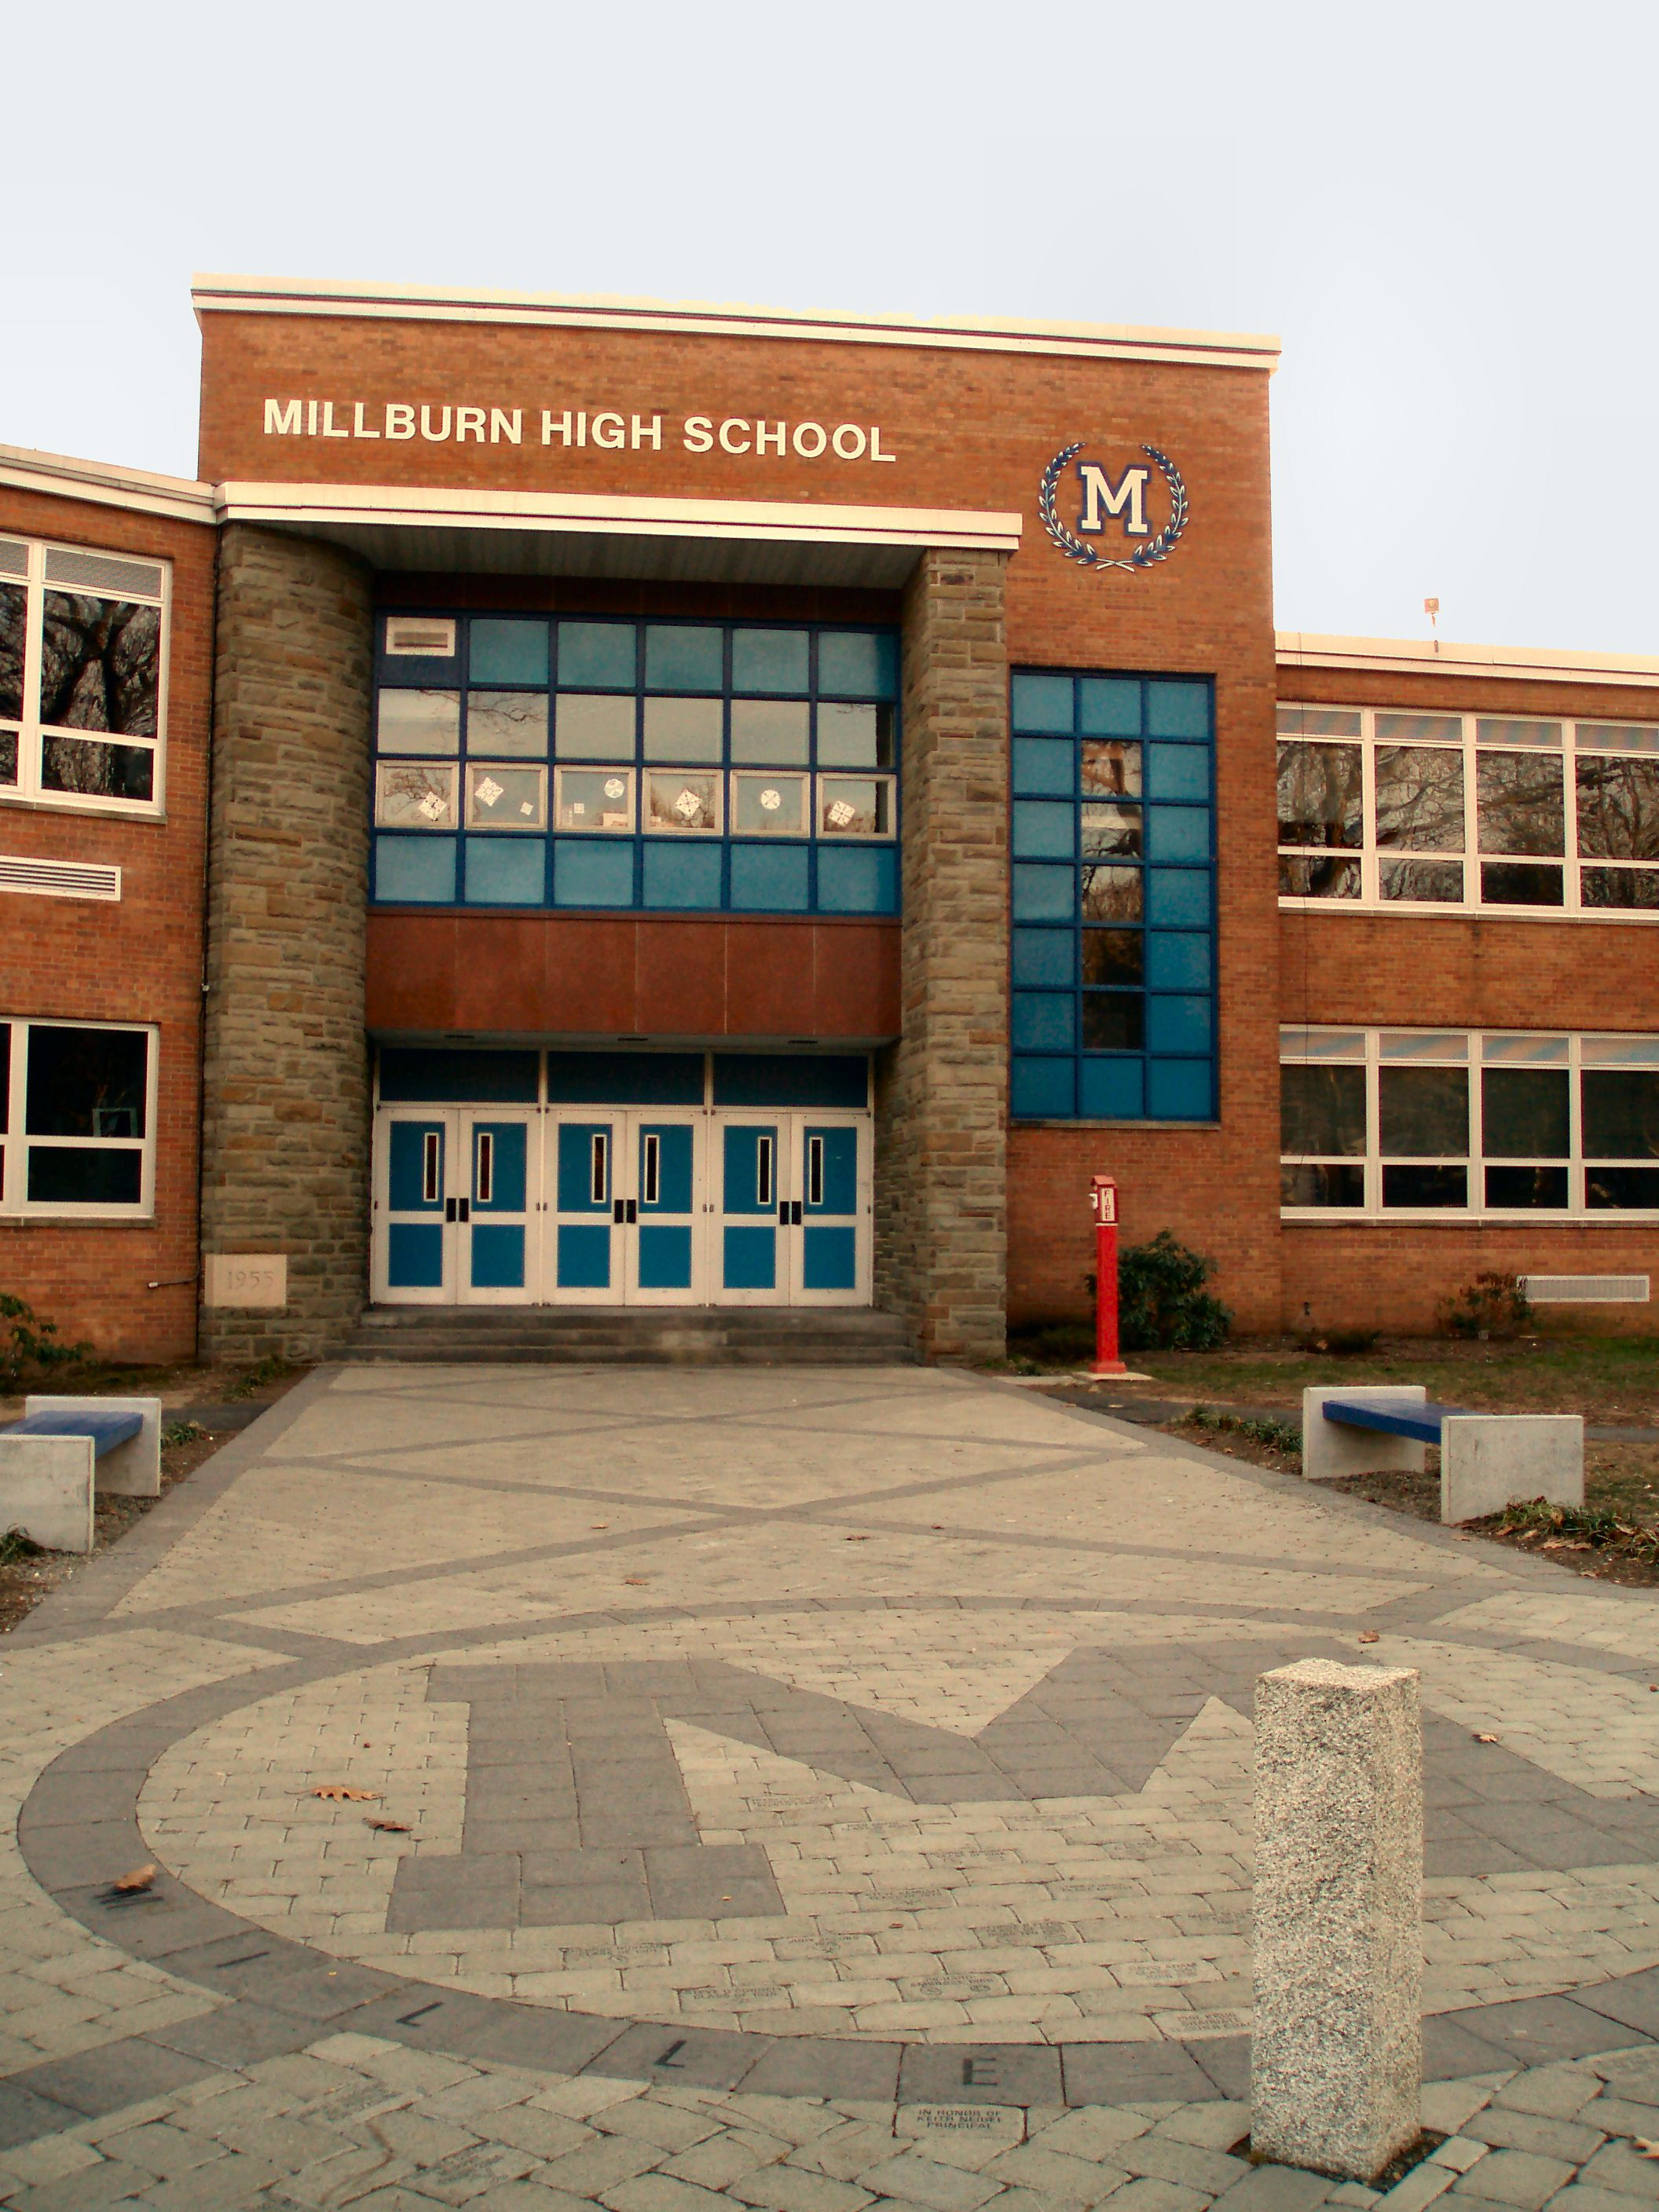 The best high school in the state of nj millburn high school http